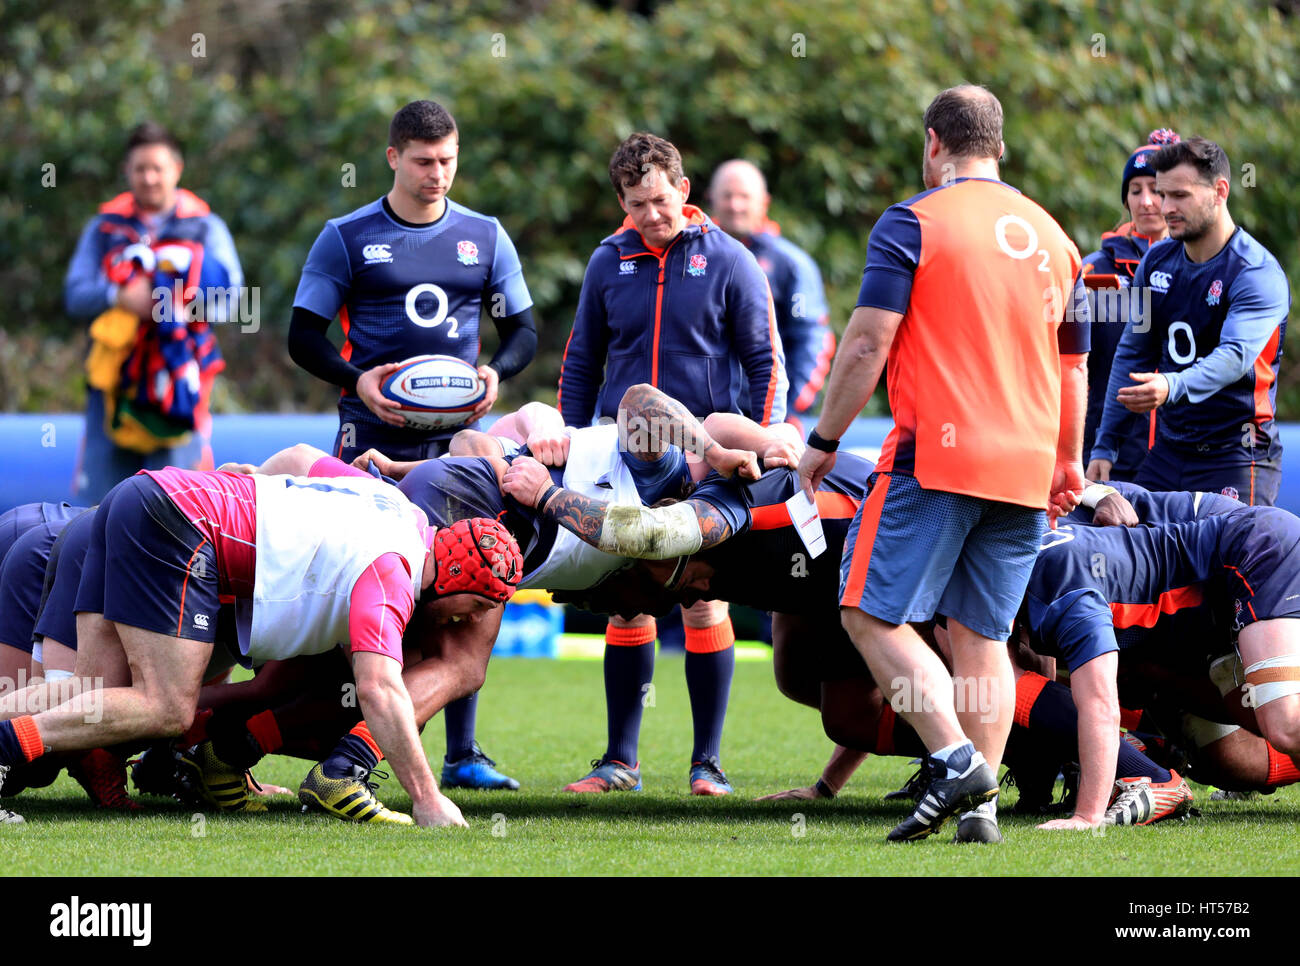 England players practice scrums during the training session at Pennyhill Park, Bagshot. - Stock Image